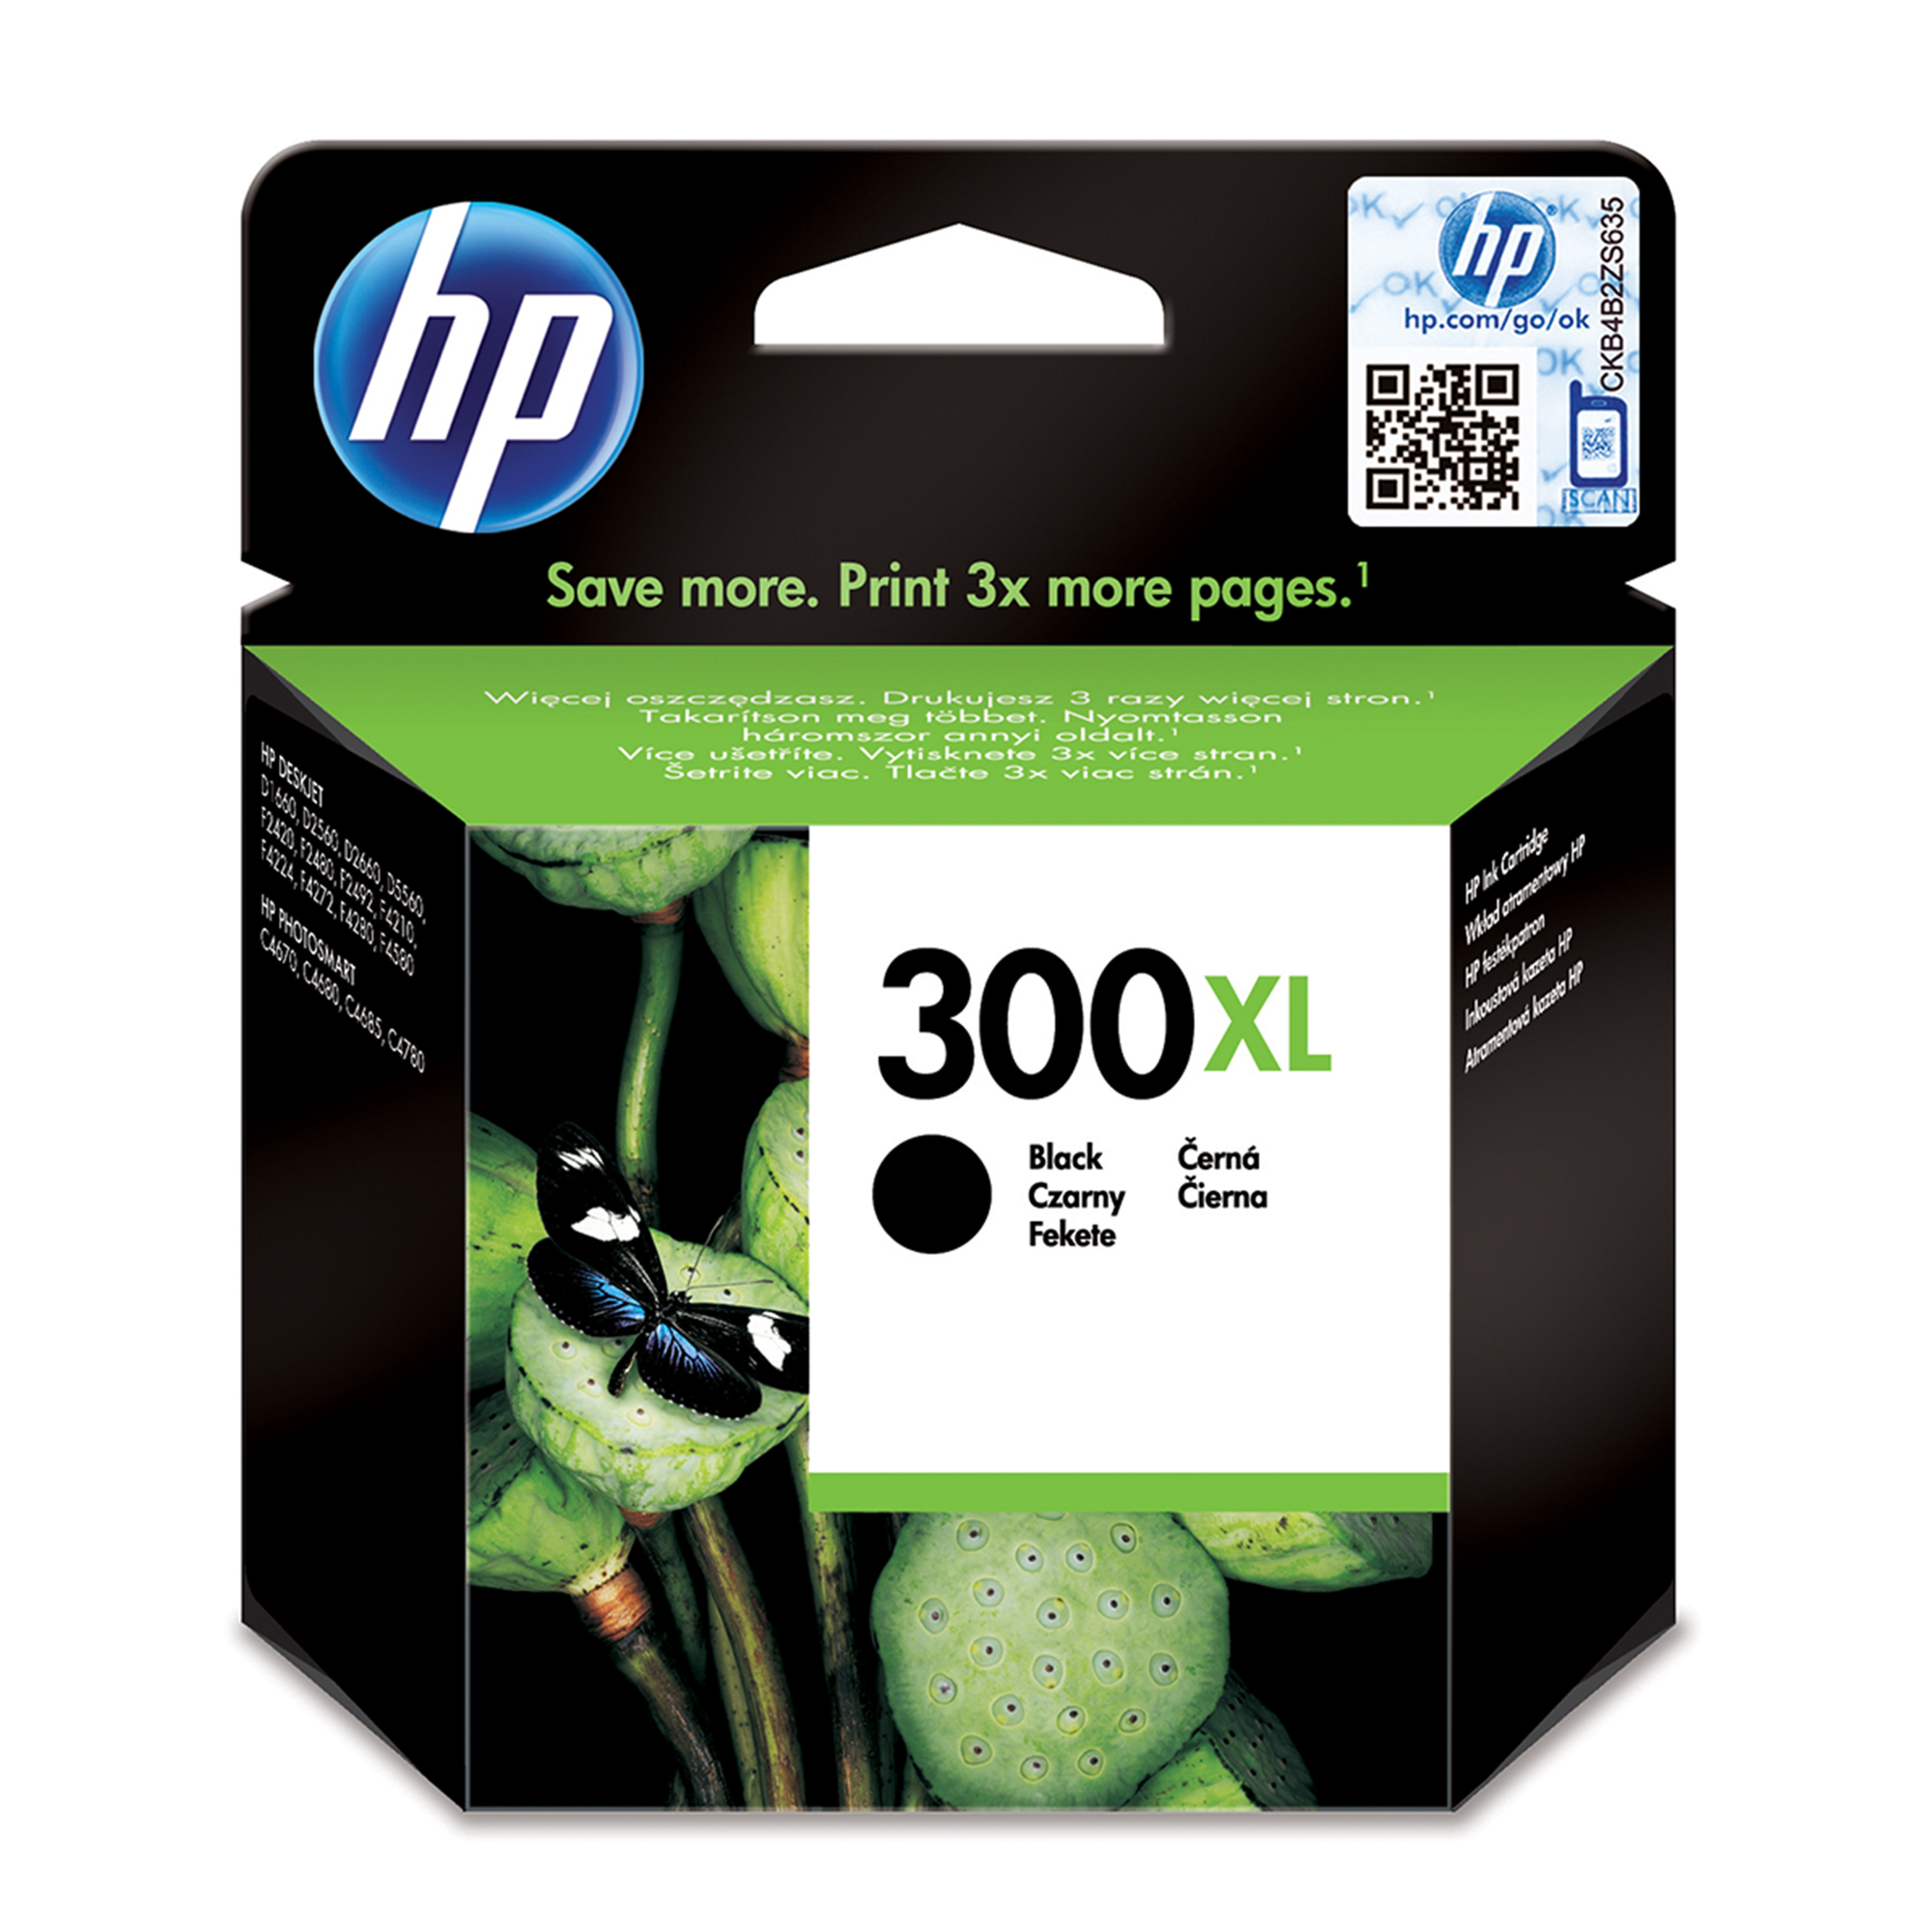 Remanufactured HP CC641EE (300XL) Black Ink Cartridge CC641EE - rem01